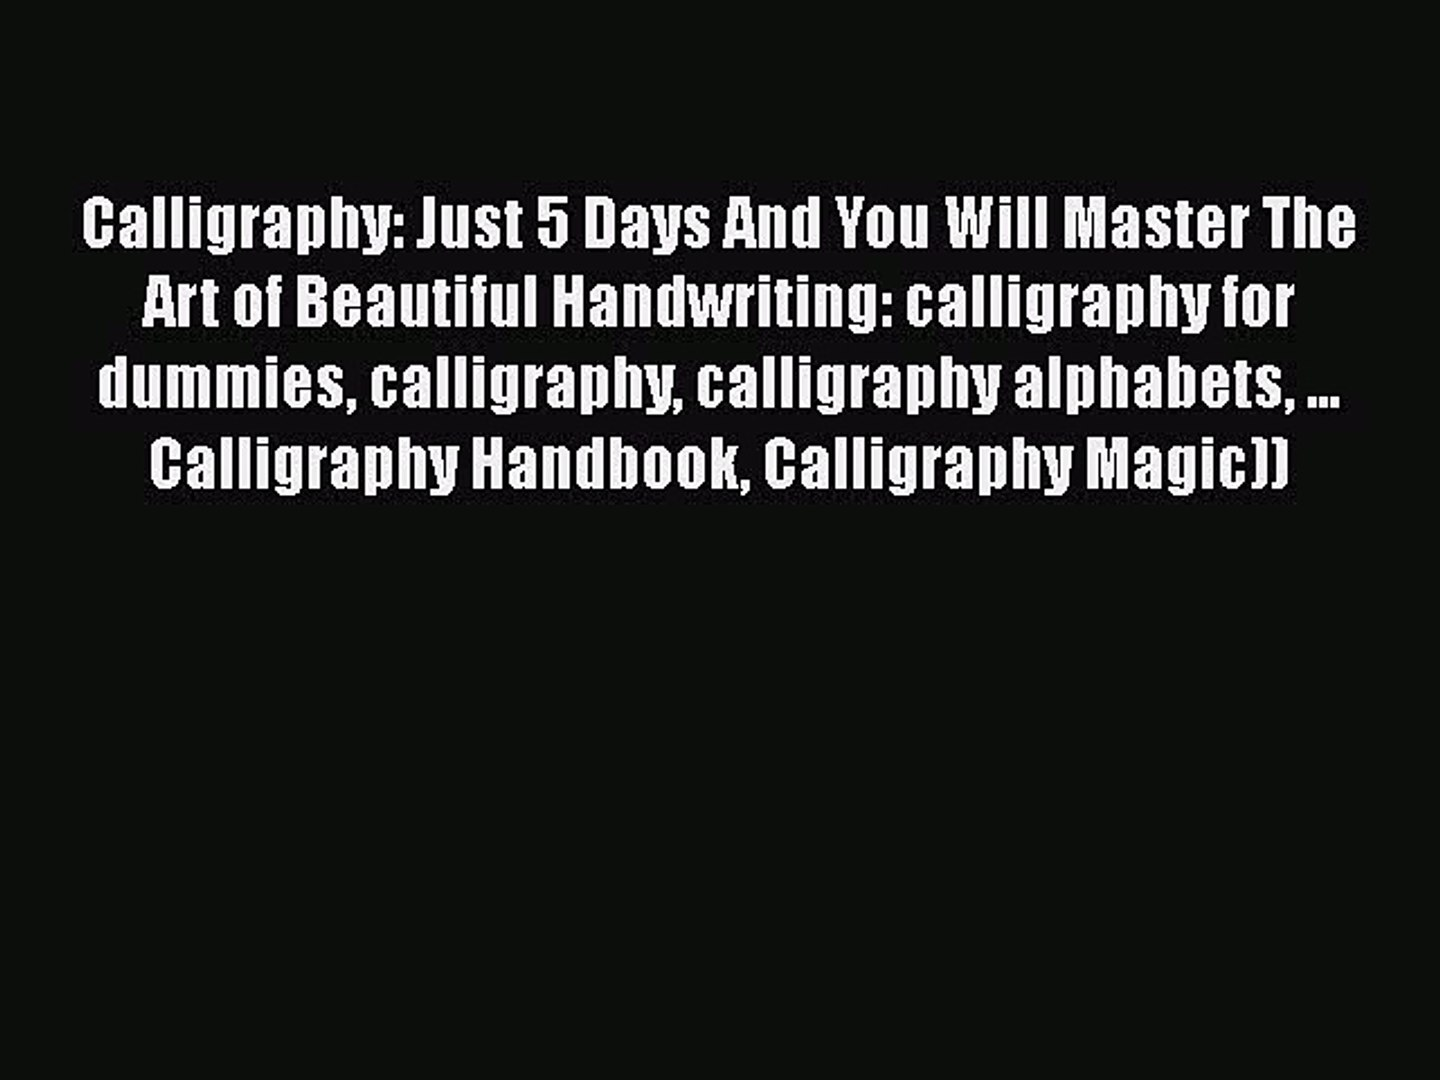 PDF Calligraphy: Just 5 Days And You Will Master The Art of Beautiful Handwriting: calligraphy